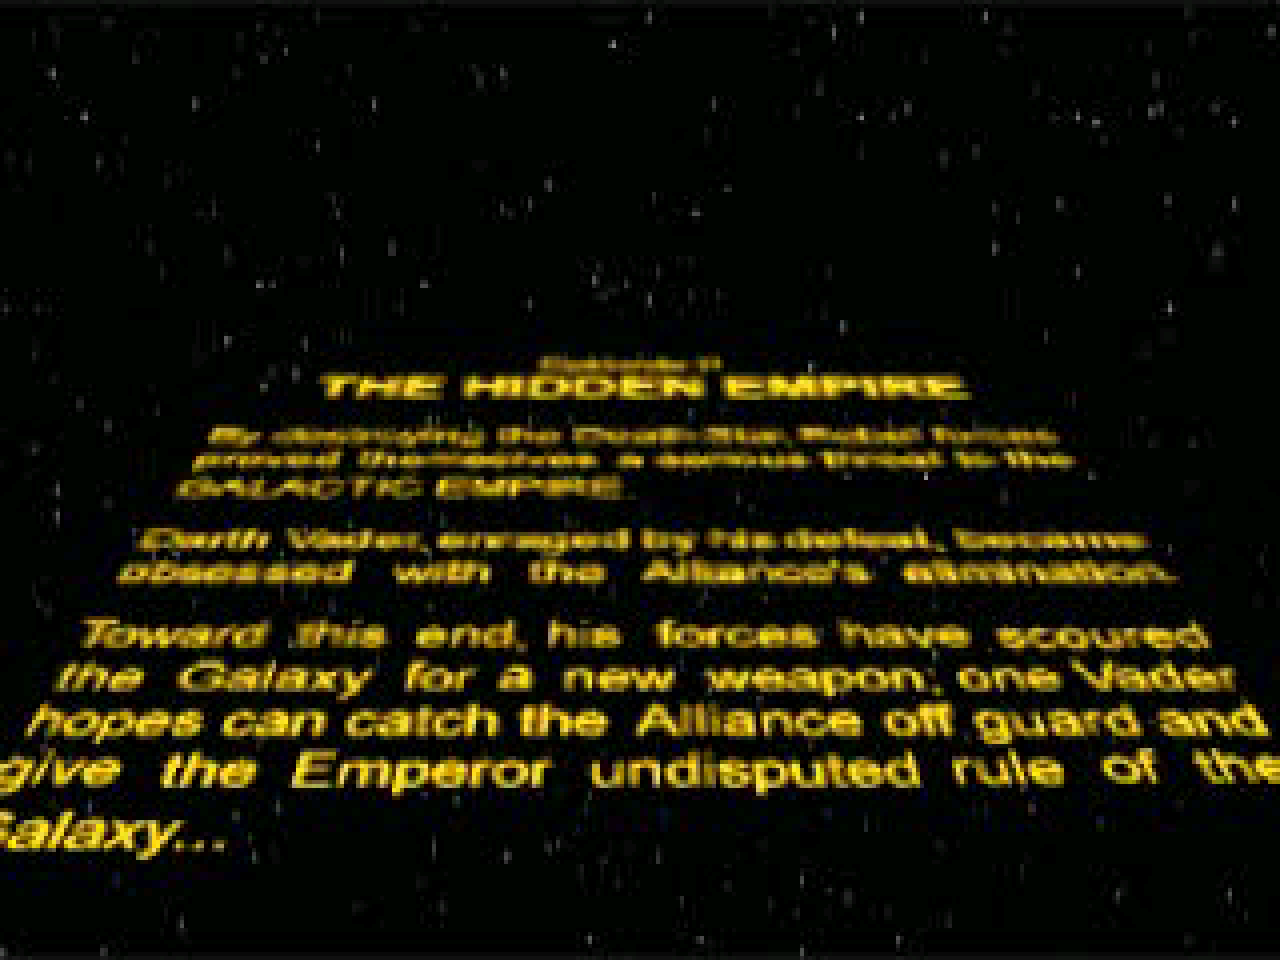 https://s3.eu-west-3.amazonaws.com/games.anthony-dessalles.com/Star Wars Rebel Assault II The Hidden Empire PS1 2020 - Screenshots/Star Wars Rebel Assault II The Hidden Empire Disc 1-201125-231404.png